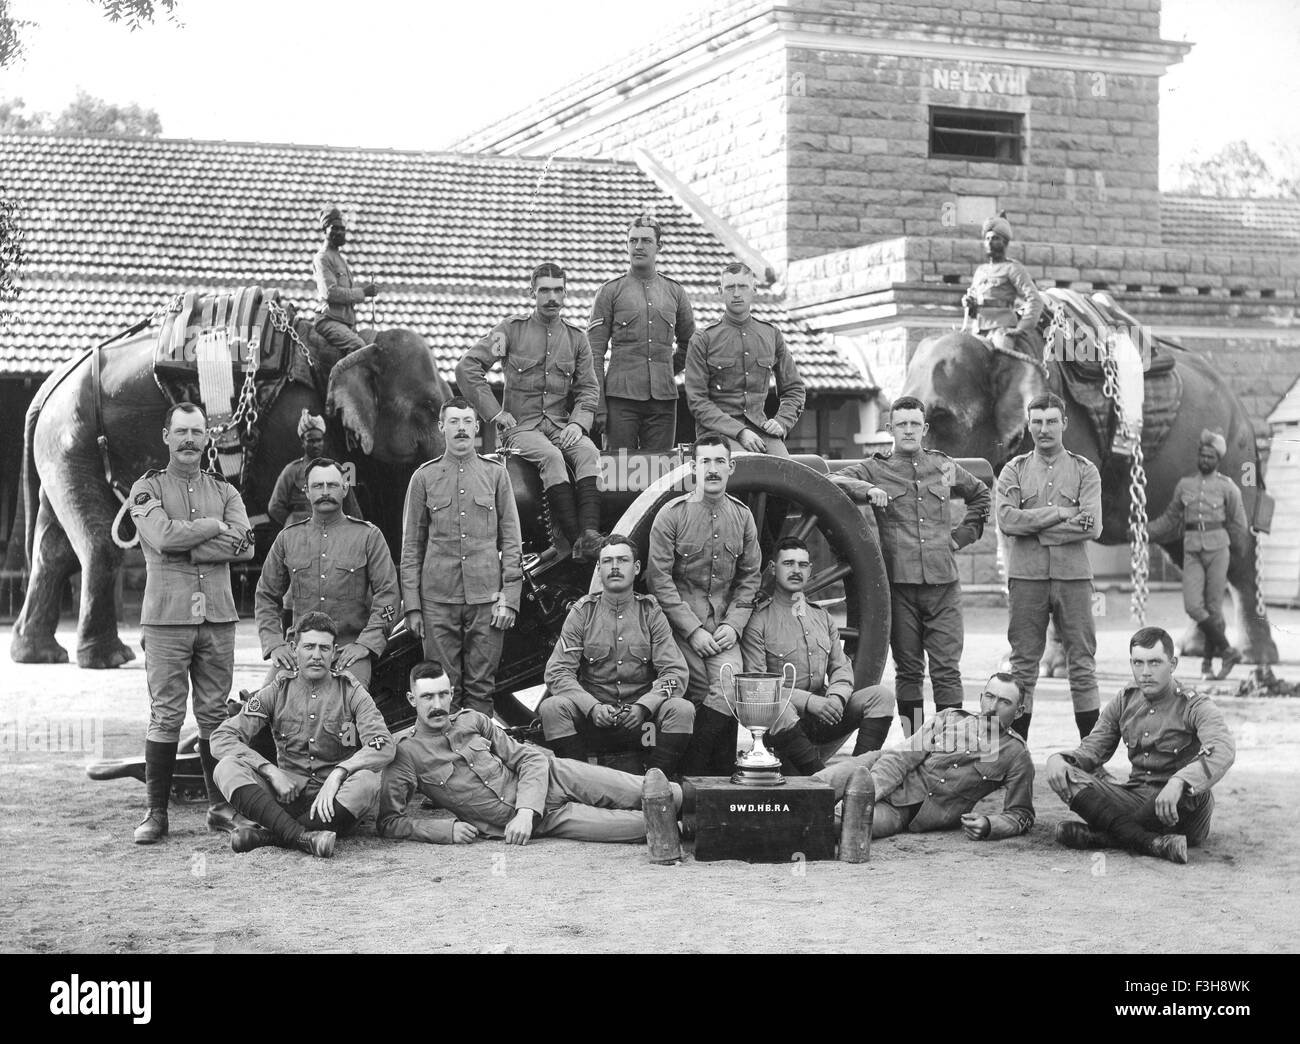 BRITISH INDIAN ARMY Members of a Royal Artillery elephant battery about 1905 - Stock Image